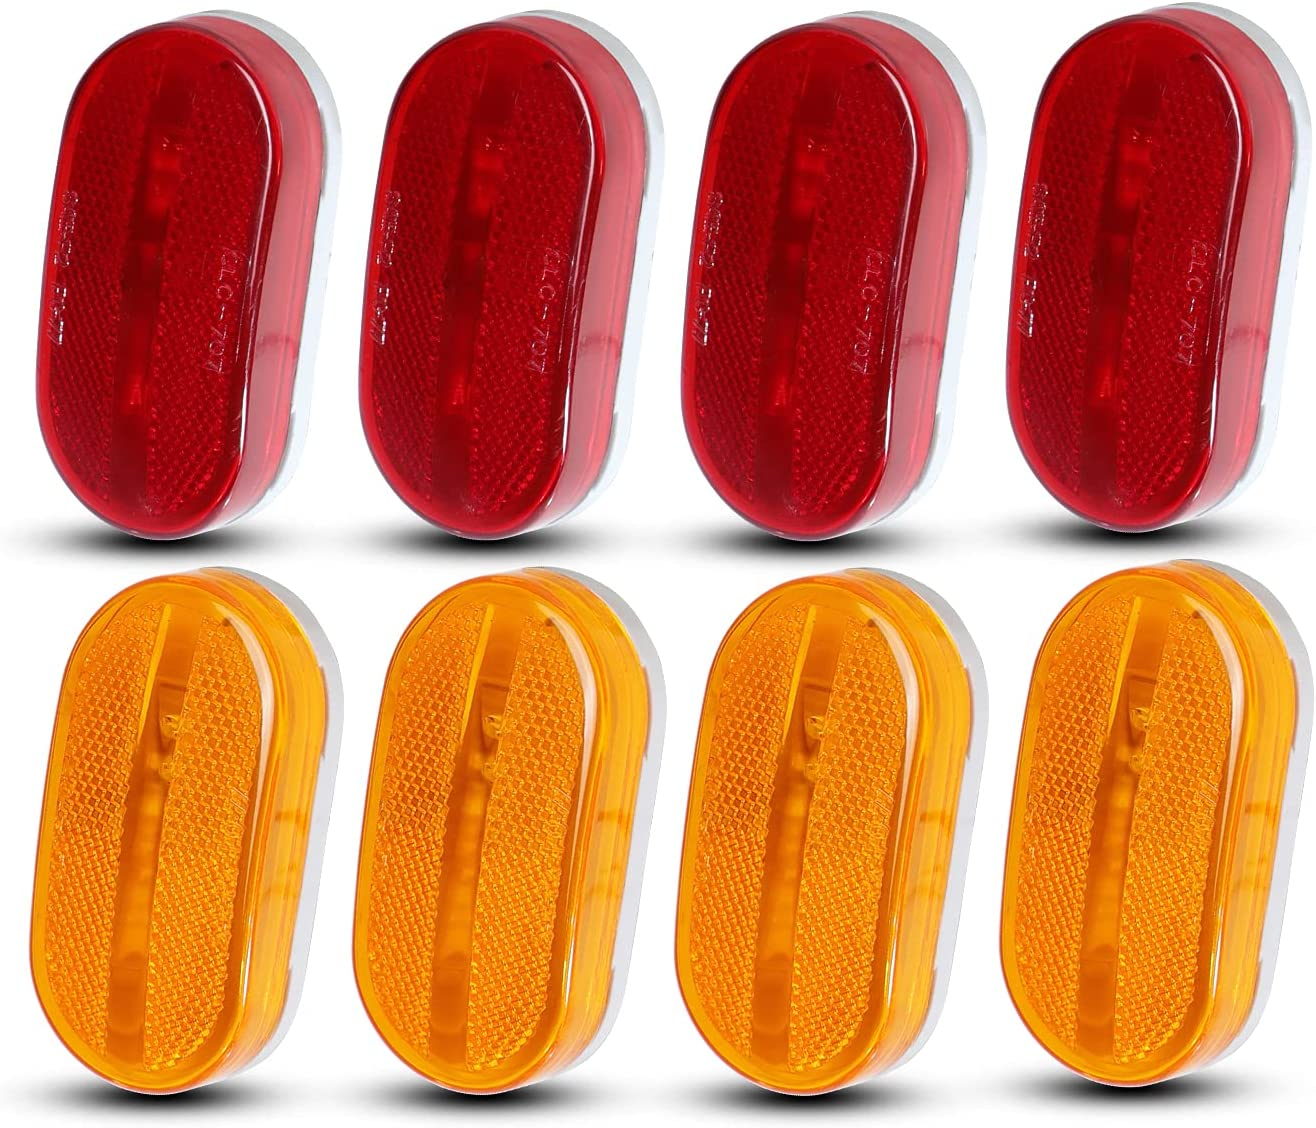 Meerkatt Pack of 8 Oblong 4 Great LED Red Amber Max 62% Max 74% OFF OFF Replacemen +